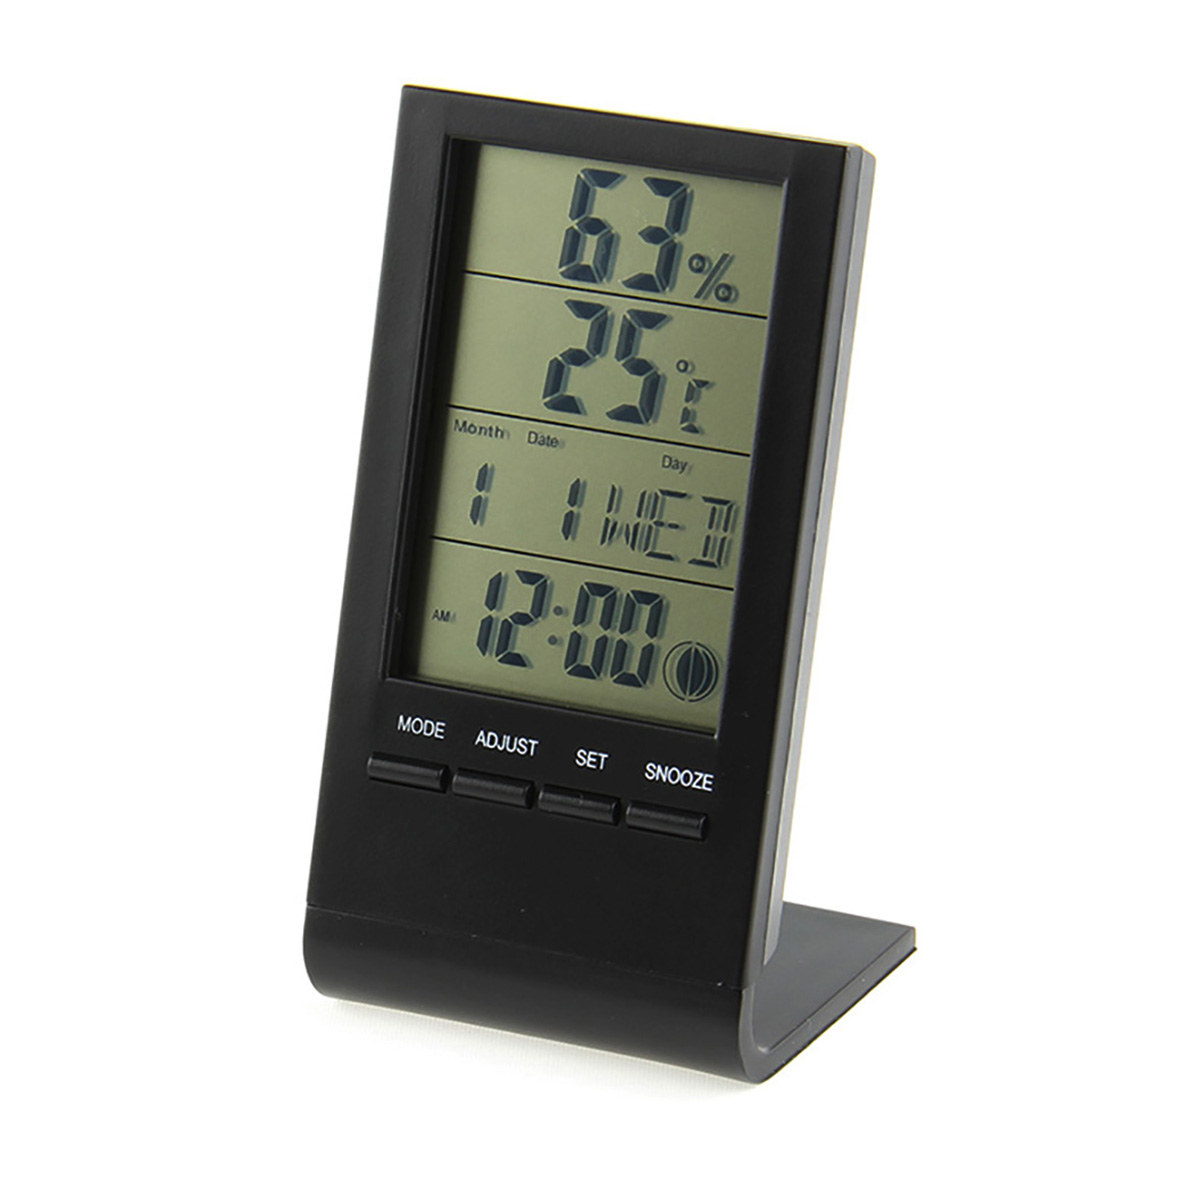 3 Inch LCD Multi-Functional Digital Thermometer / Hygrometer / C